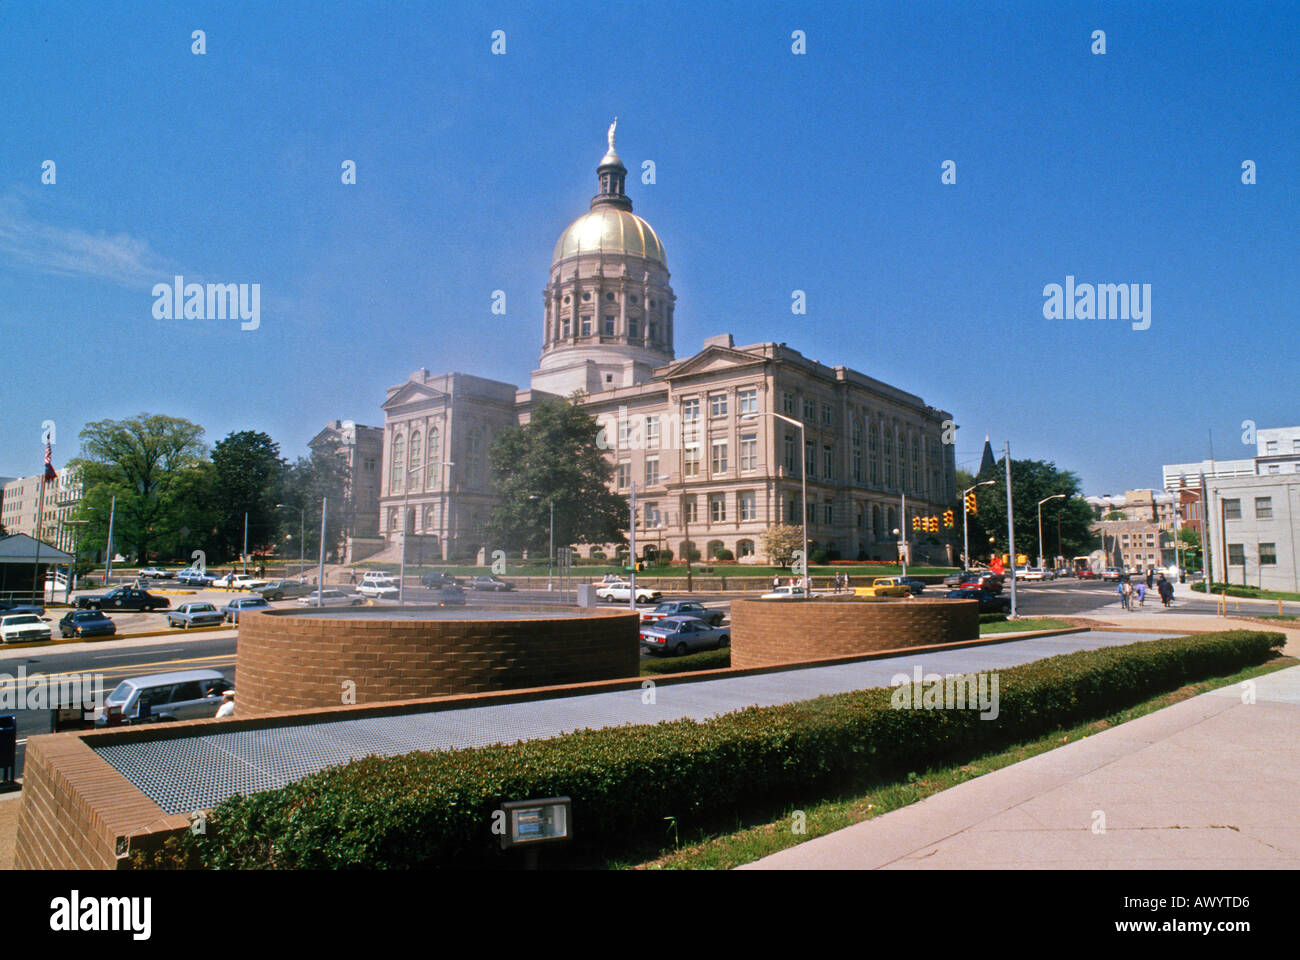 The State Capitol Building at Atlanta Georgia - Stock Image